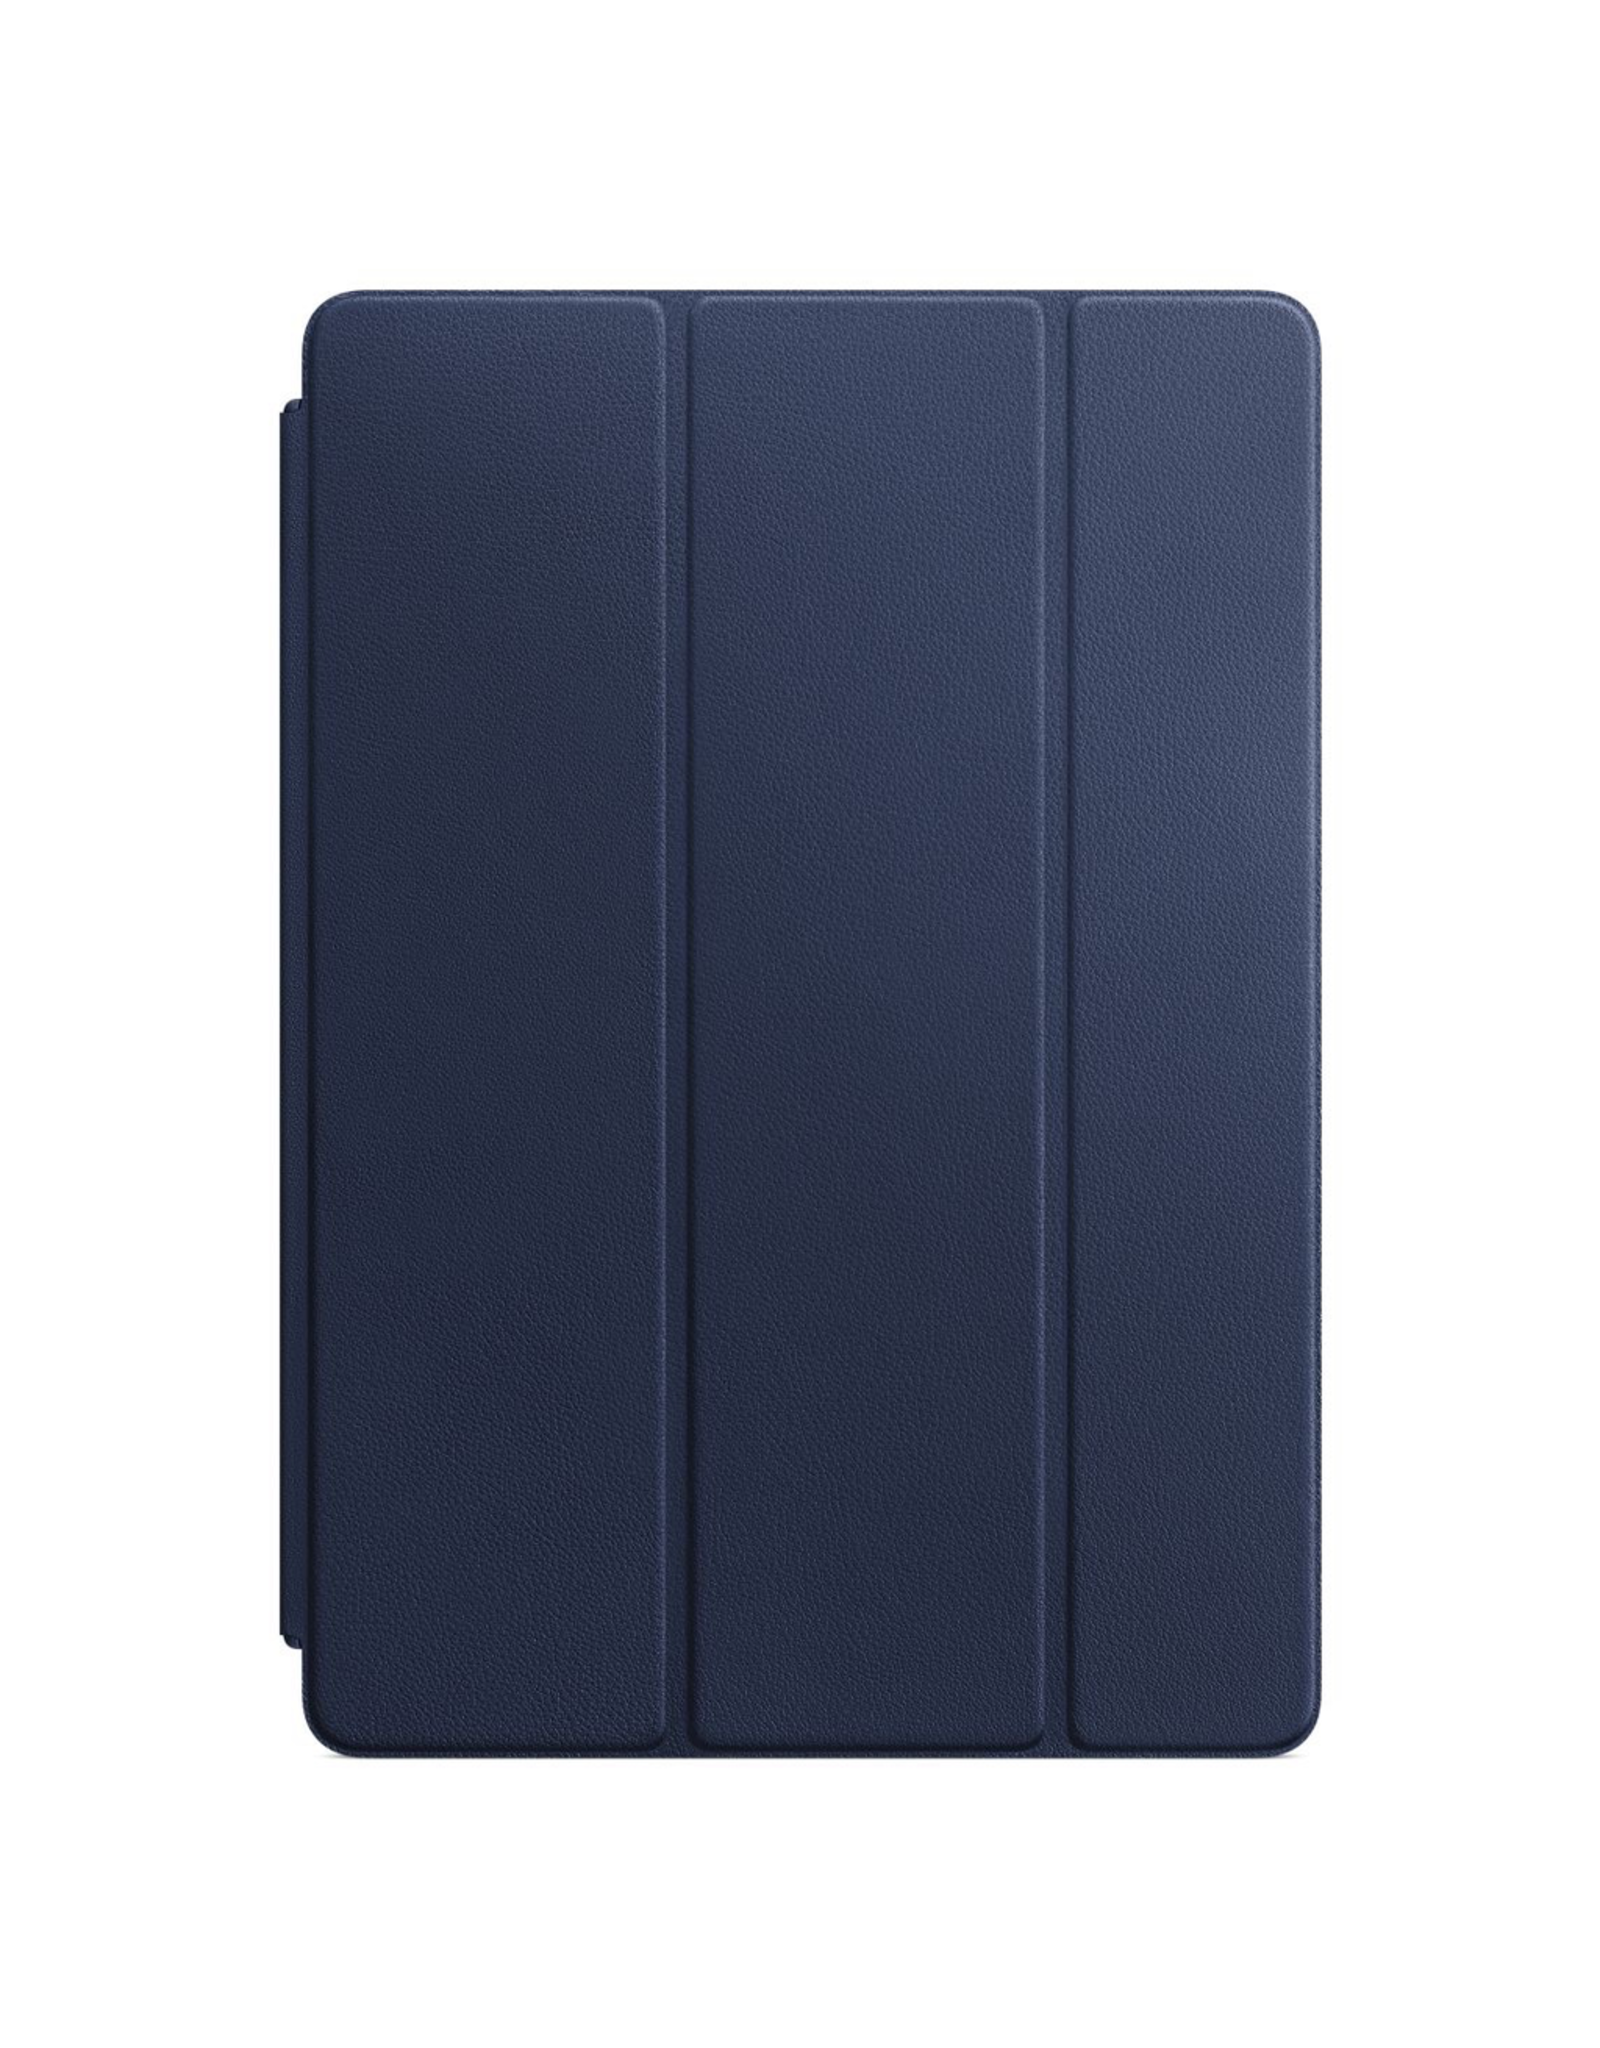 Apple Apple Leather Smart Cover for 10.5-inch iPad Pro - Midnight Blue